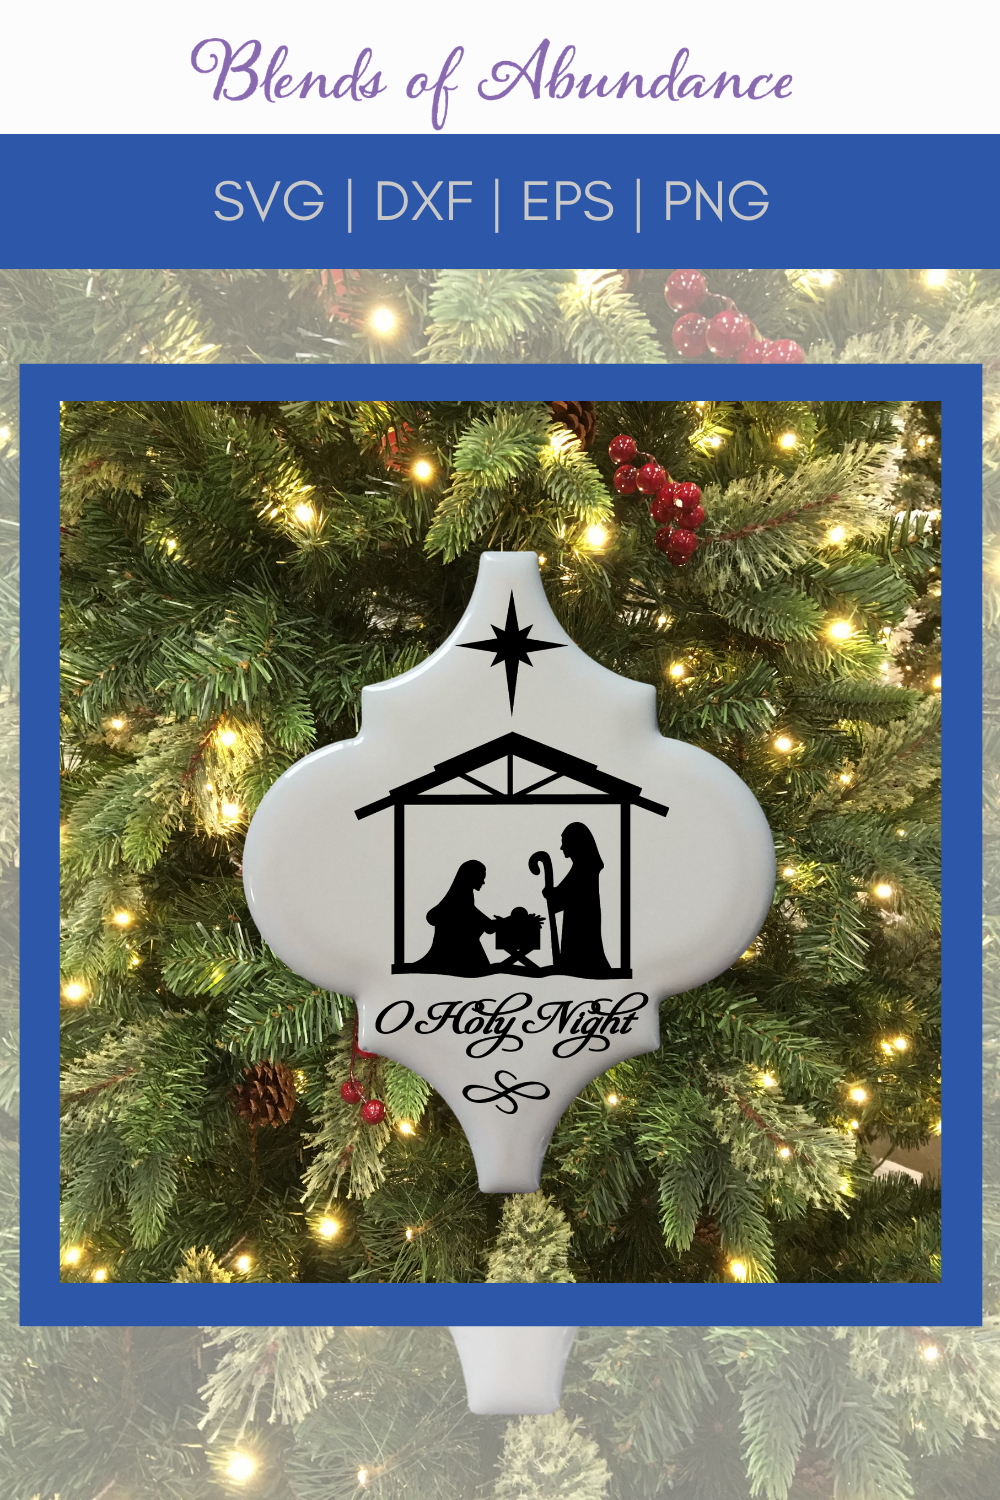 Nativity Arabesque Tile Ornament Svg Tile Ornament Template Lantern Tile Christmas O Holy N Cricut Ornaments How To Make Ornaments Diy Christmas Ornaments